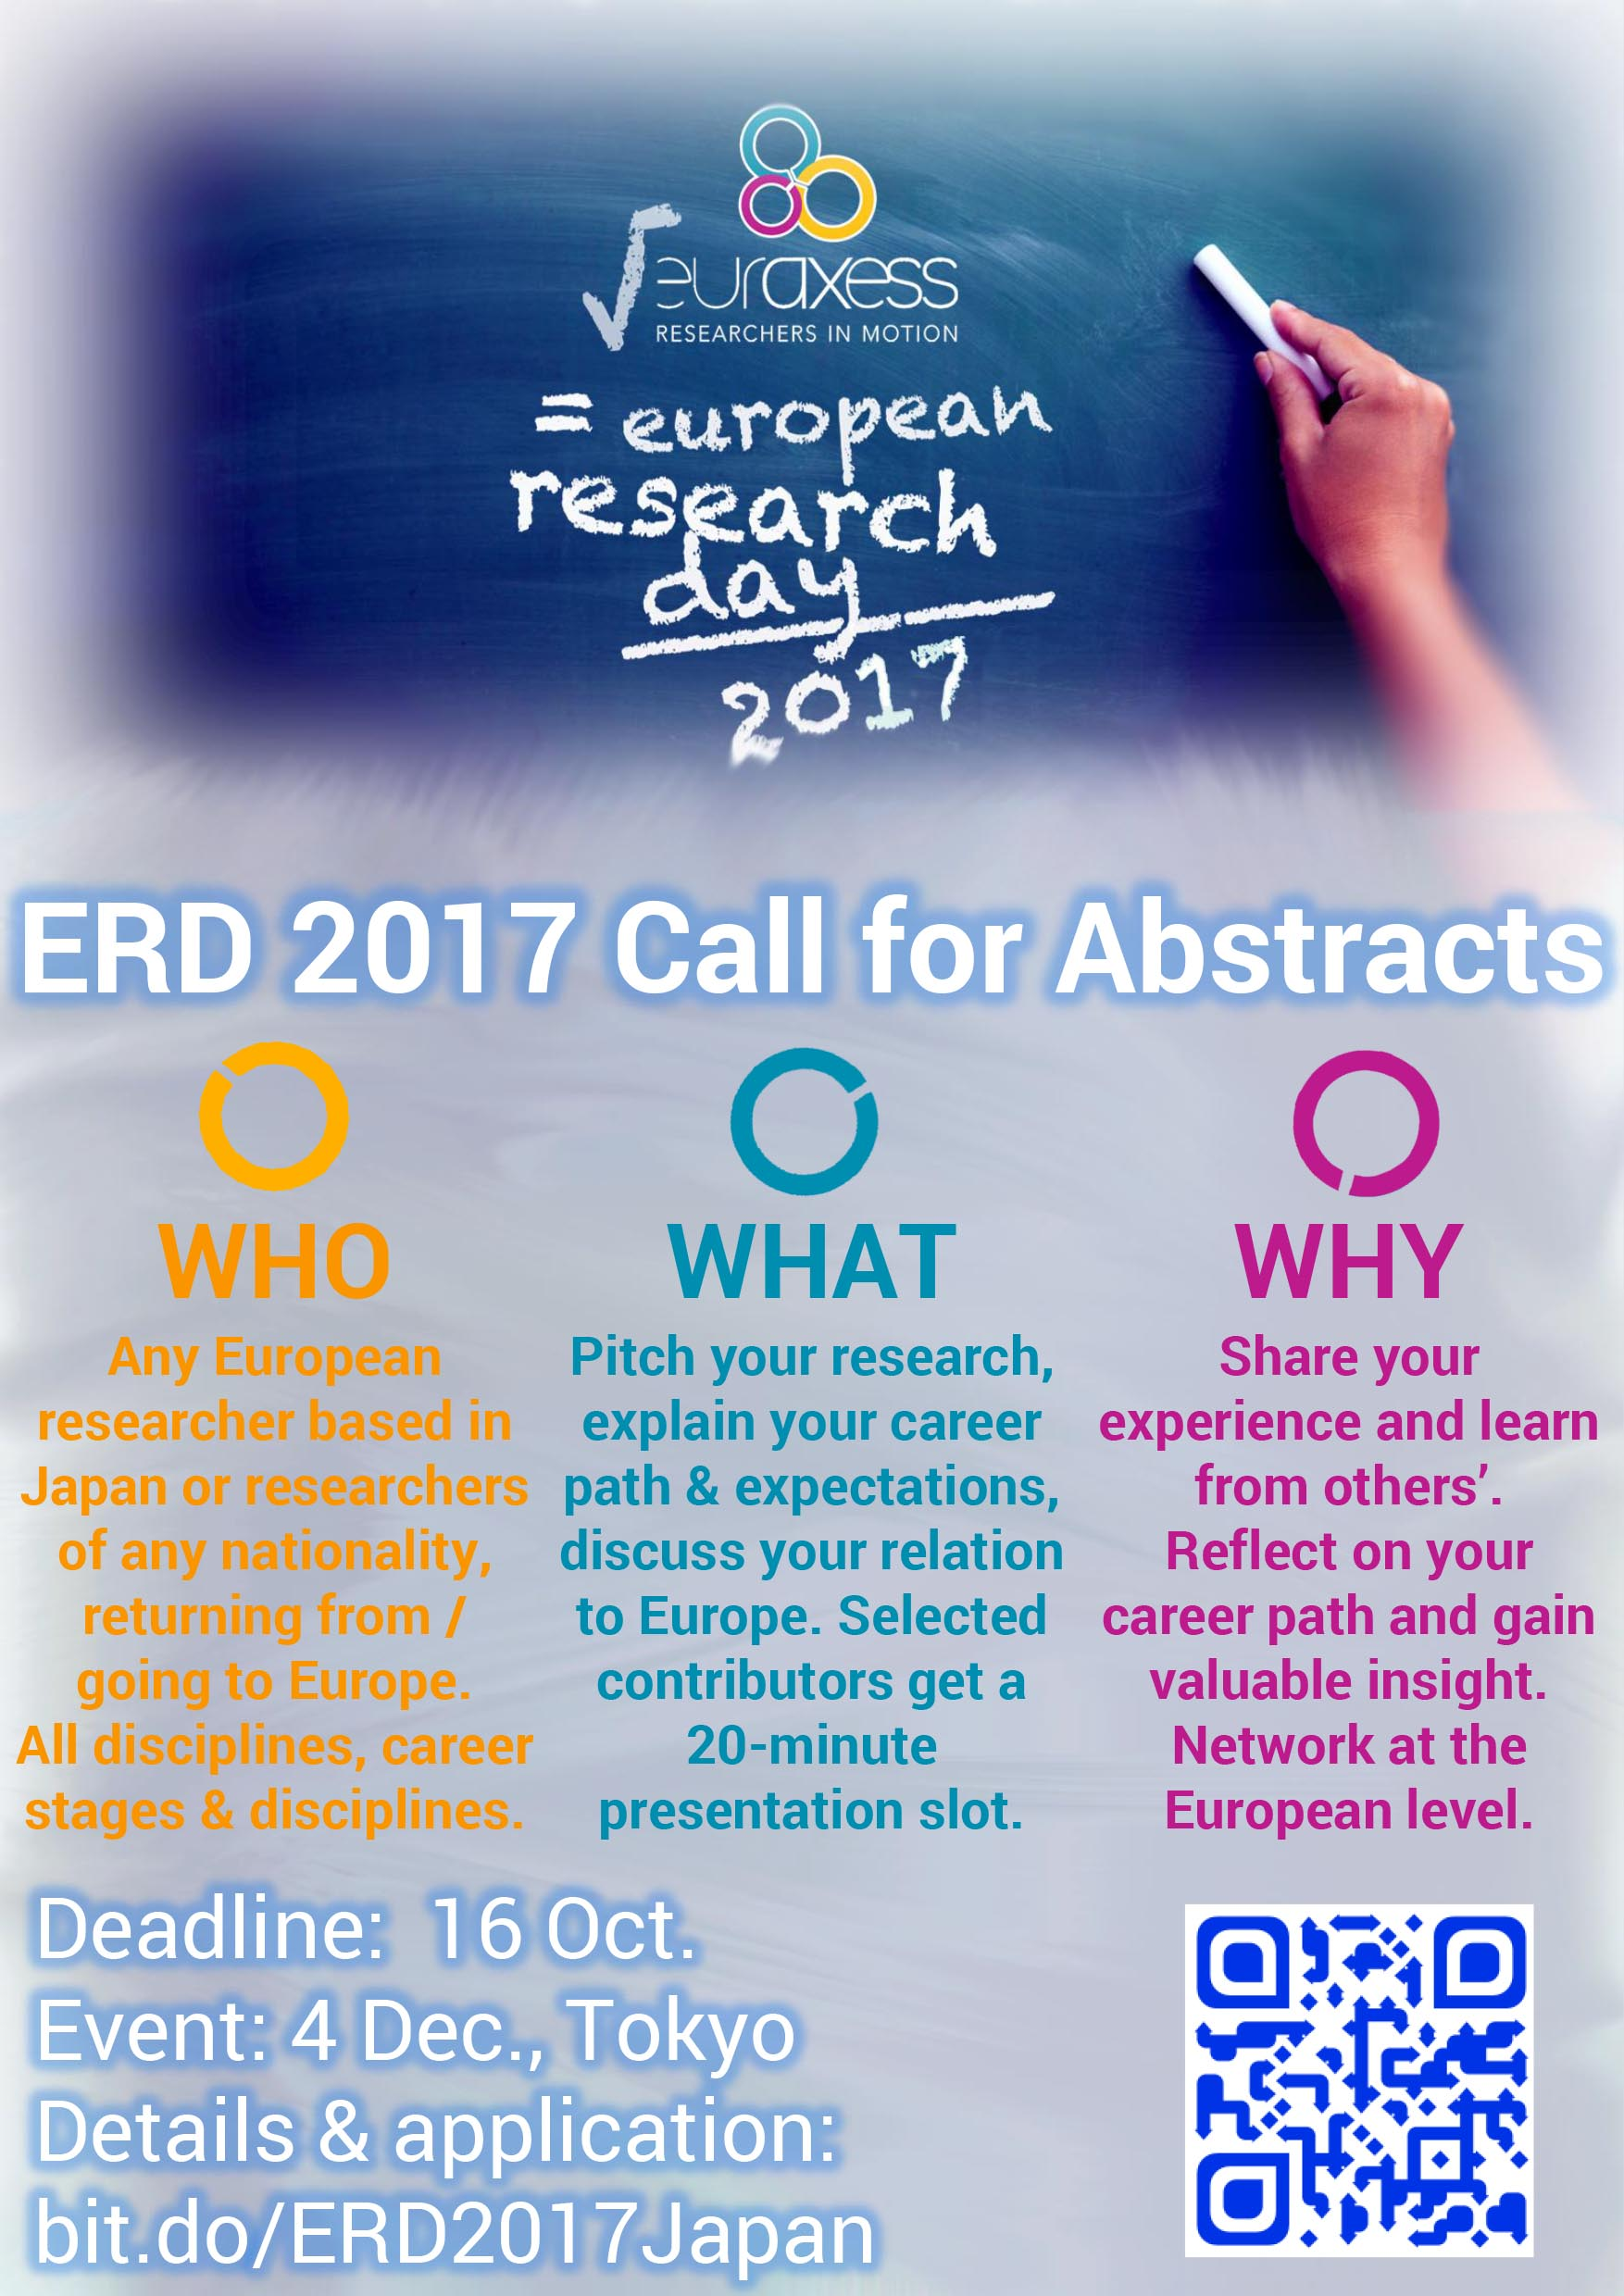 erd_2017_call_for_abstracts.jpg